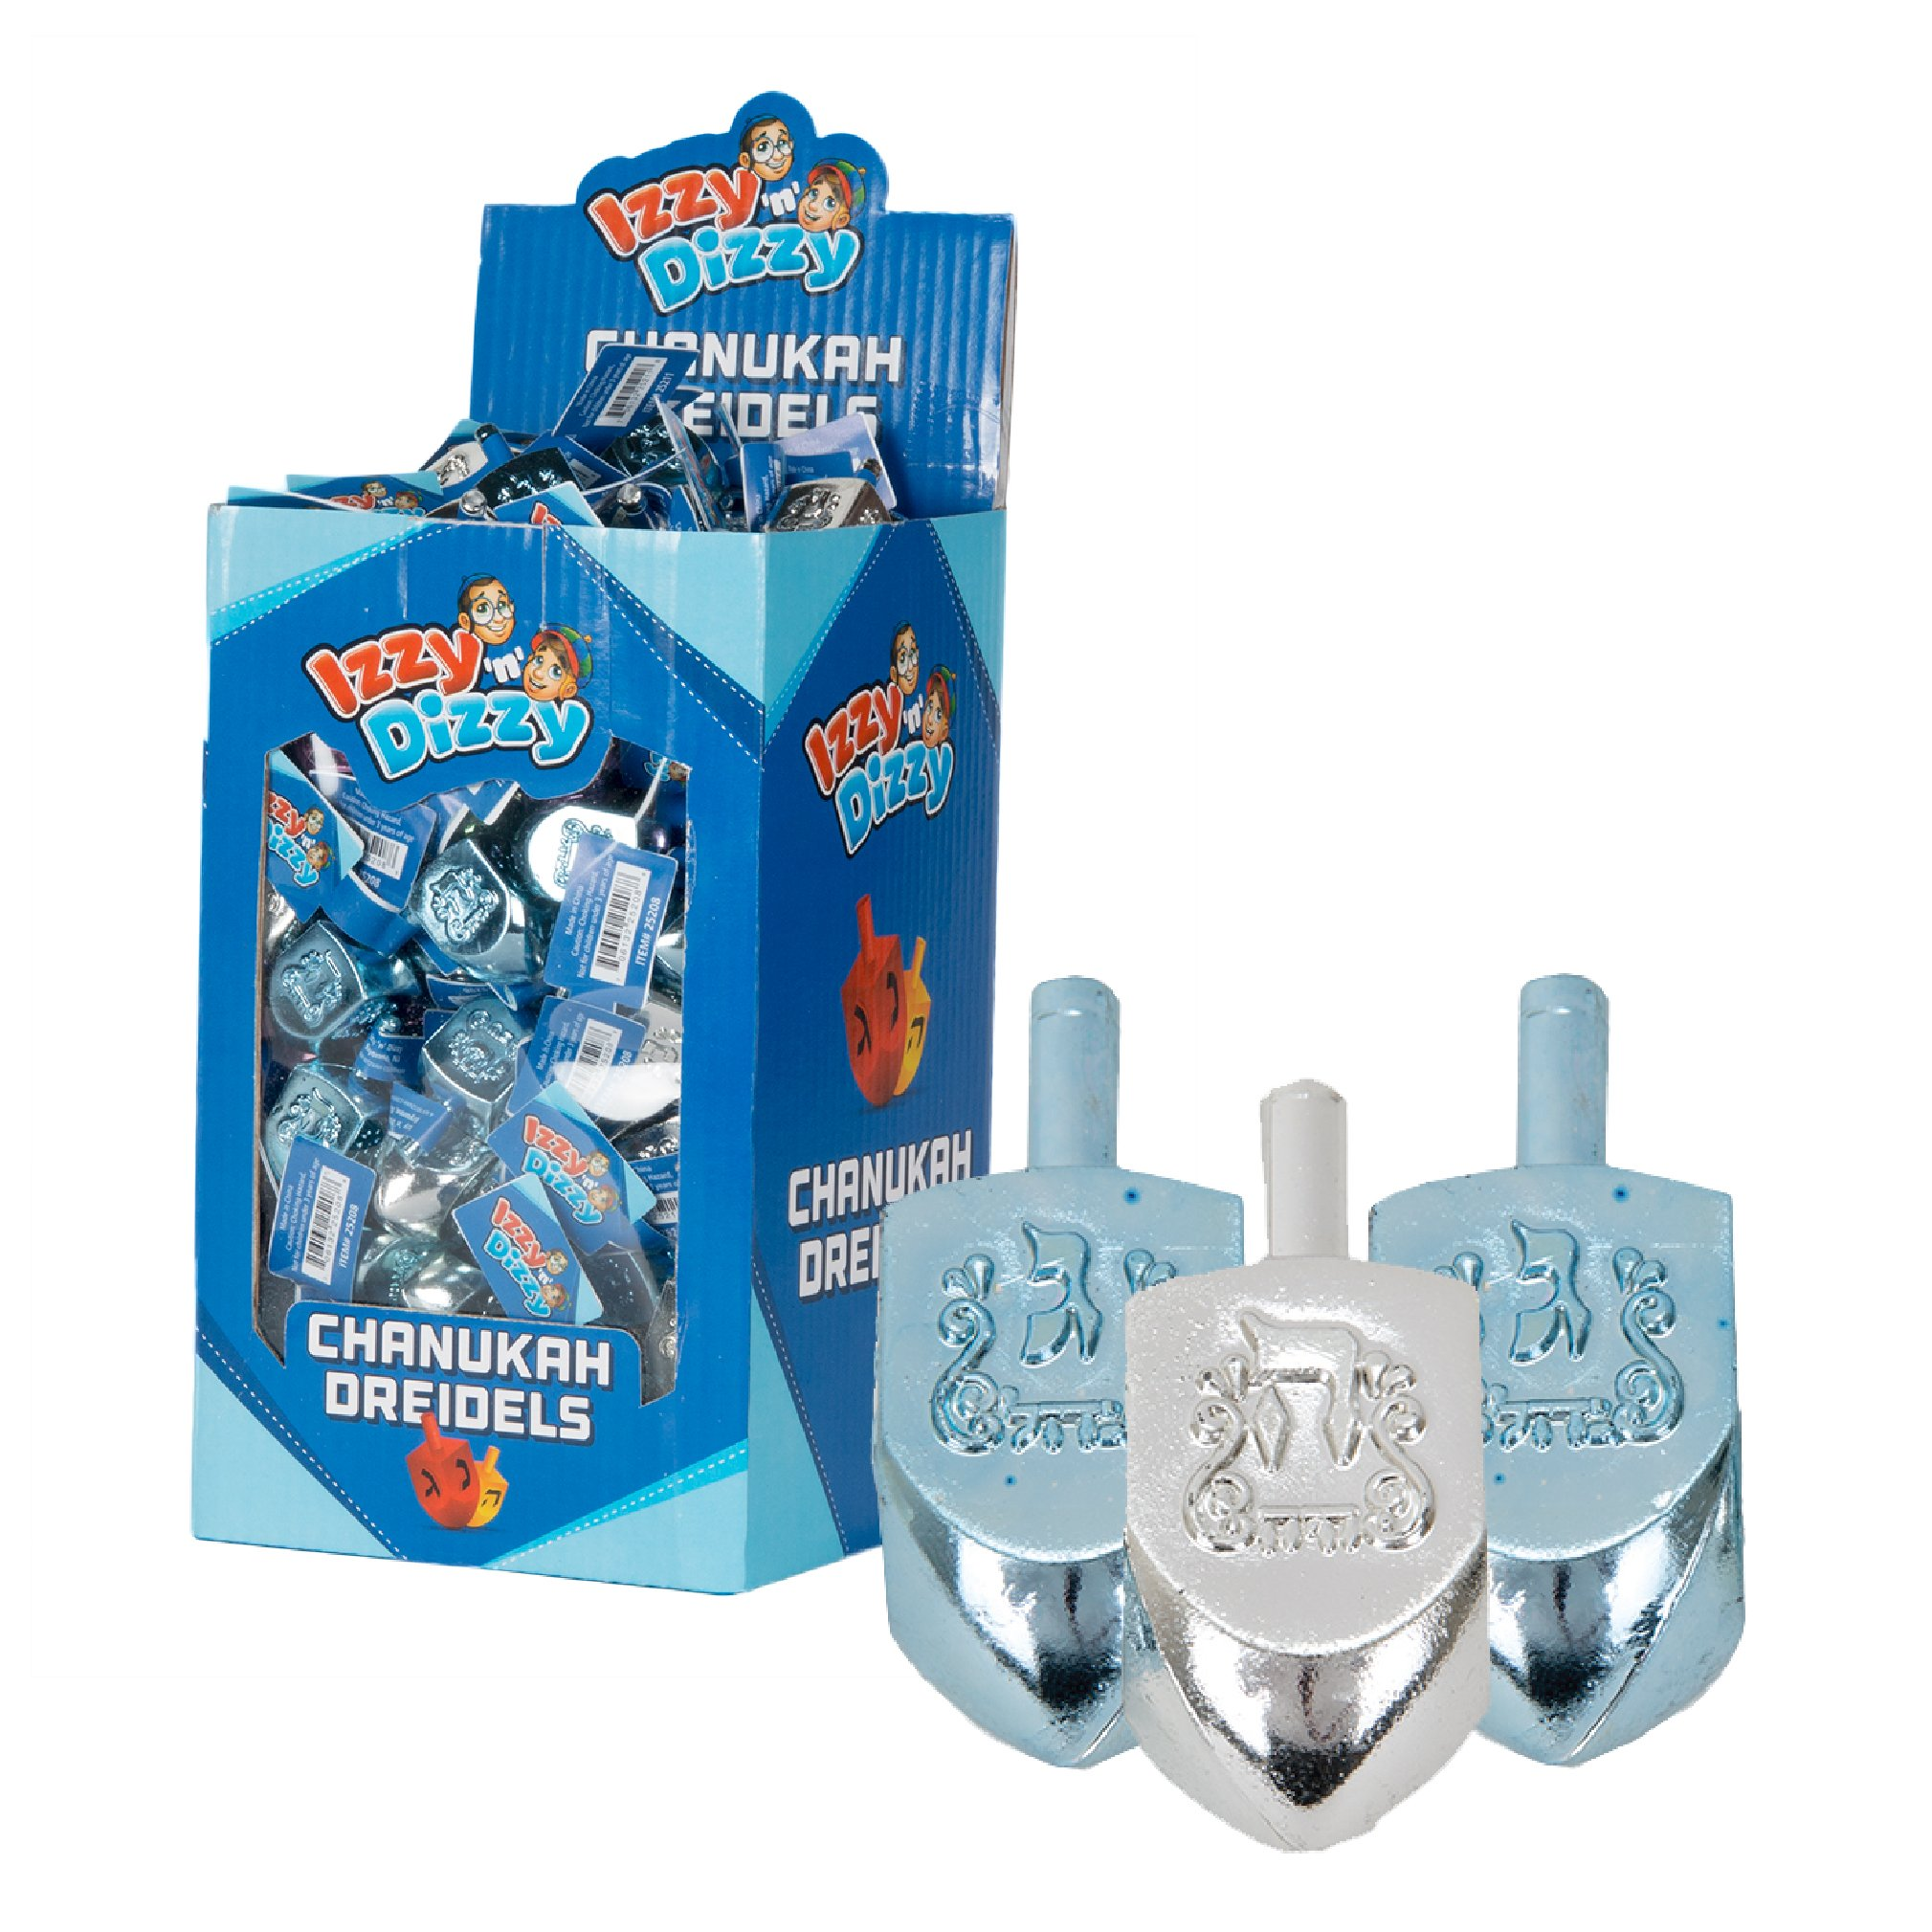 100 Medium Dreidels - Blue and Silver Metallic - Classic Chanukah Spinning Draidel Game, Gift and Prize - Bulk Value Pack - By Izzy n Dizzy